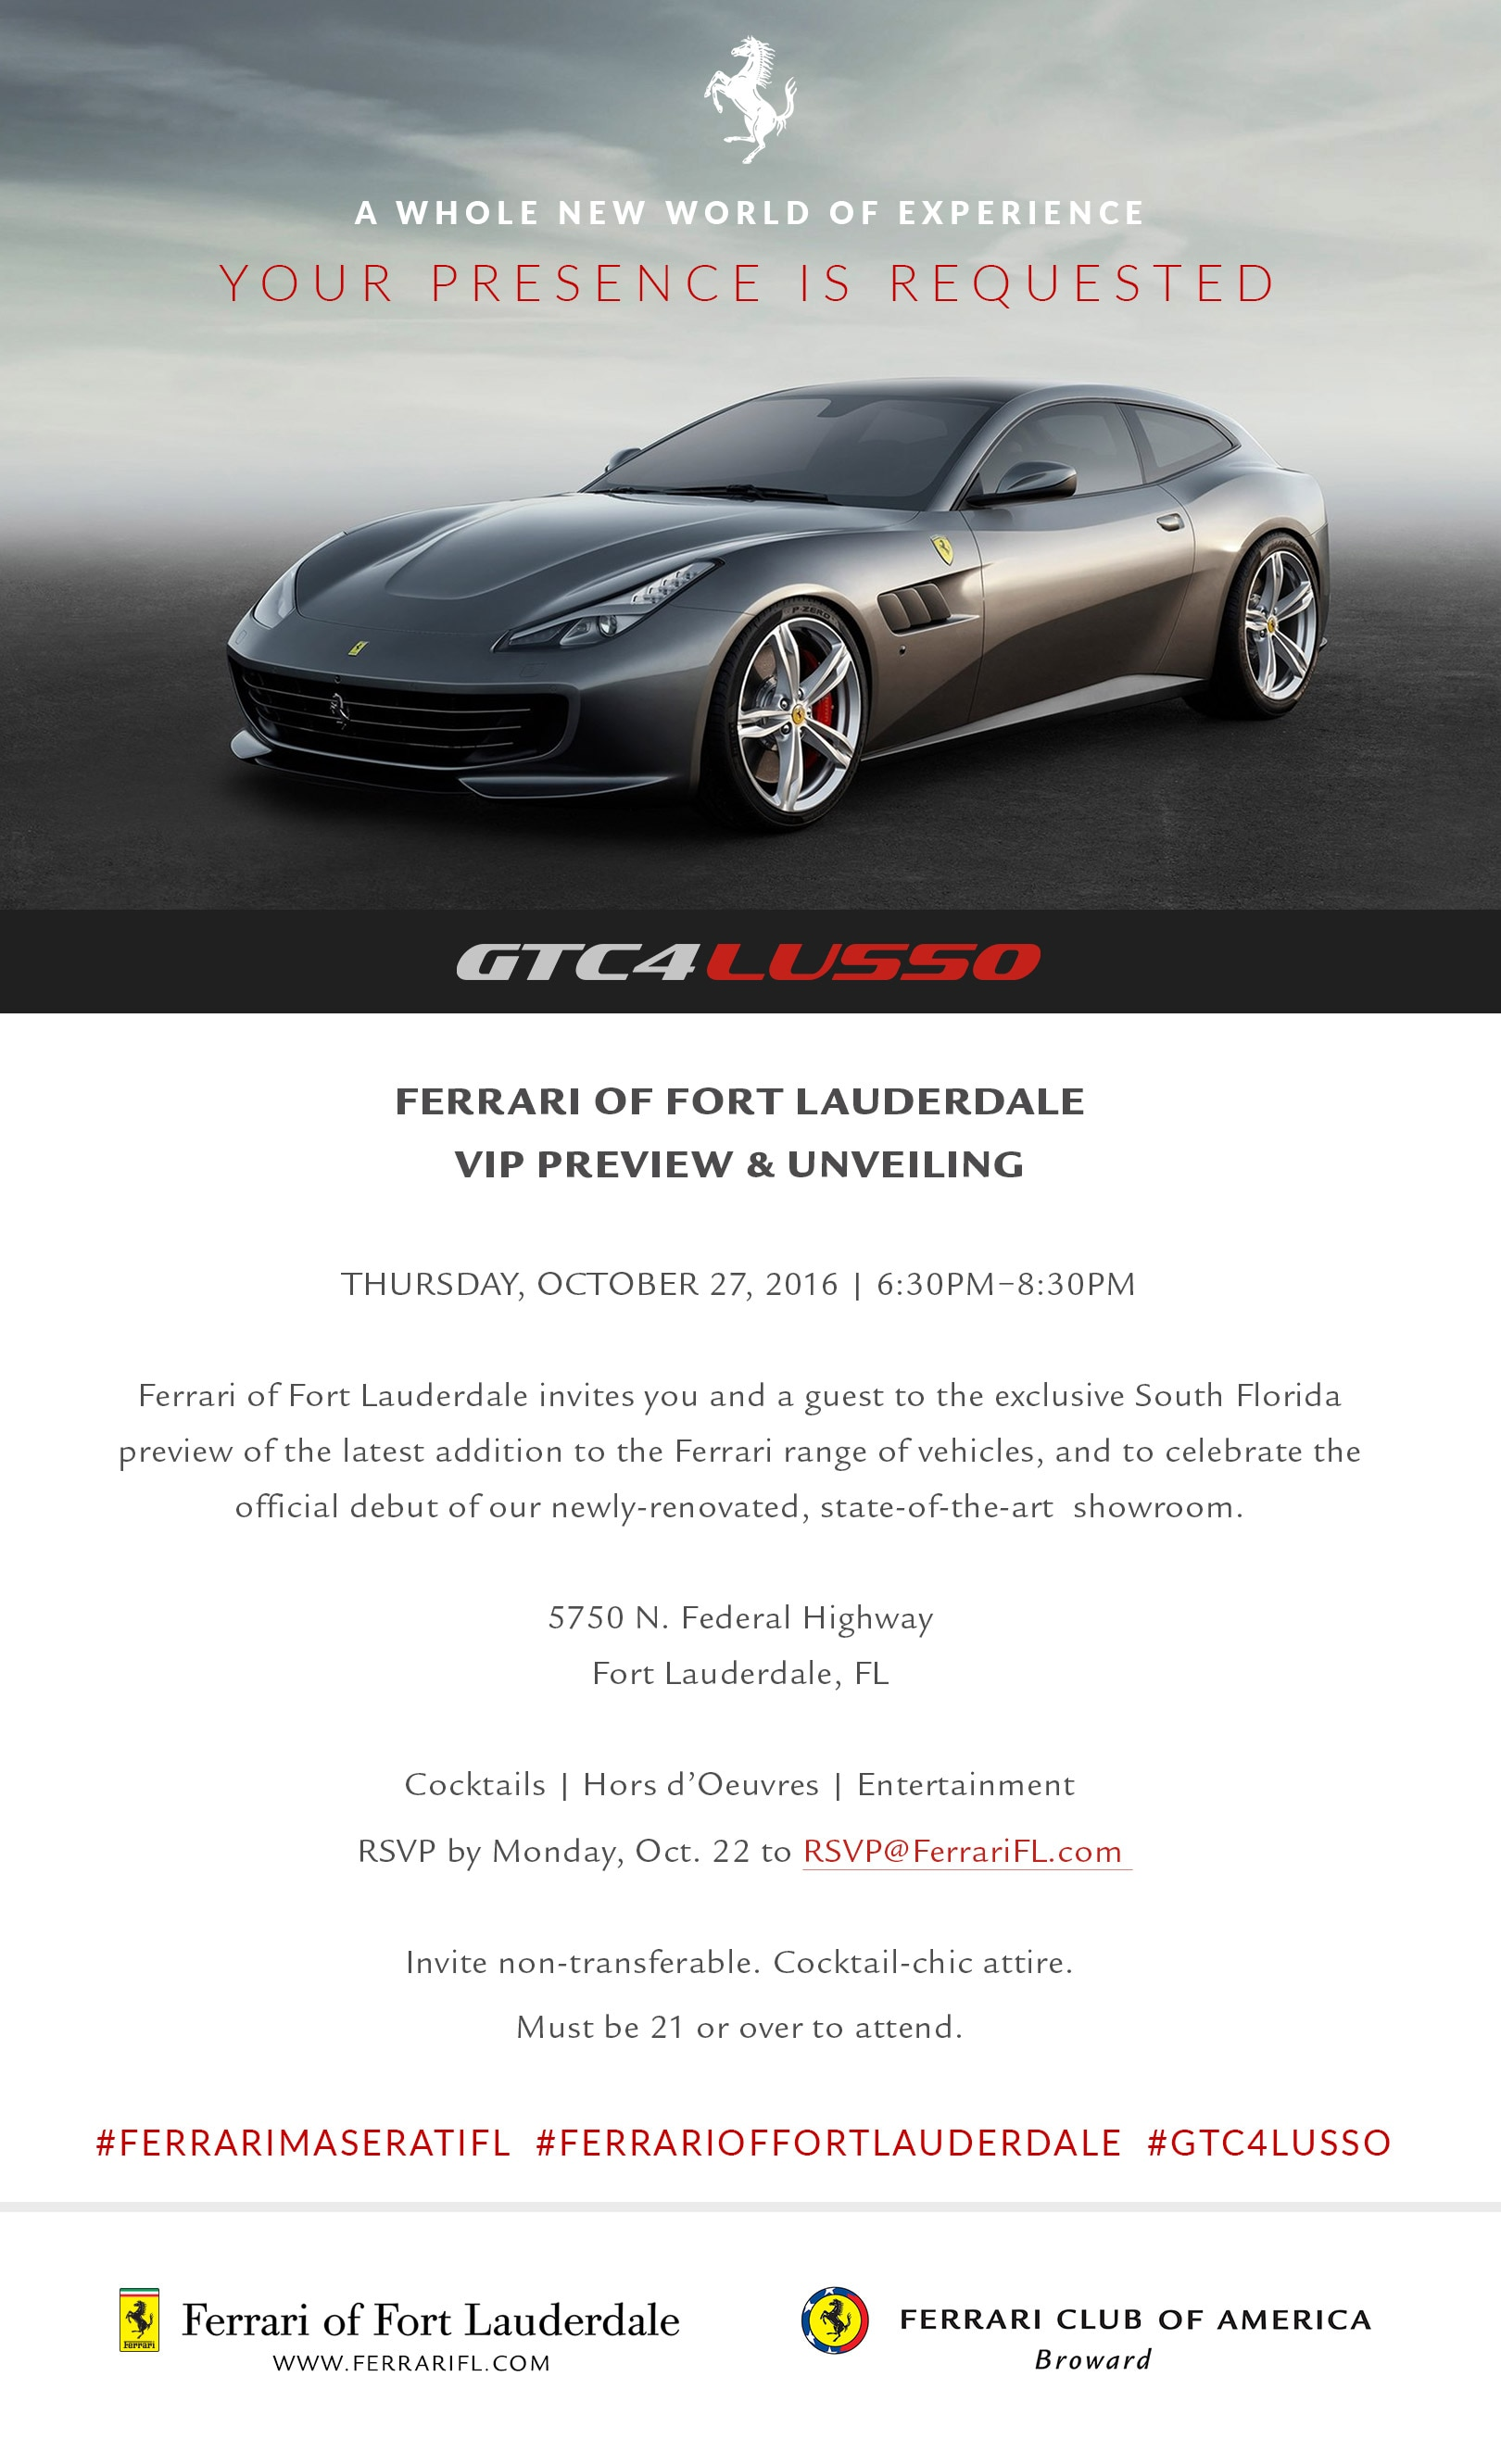 Private Unveiling of Ferrari GTC4Lusso at Ferrari of Fort Lauderdale